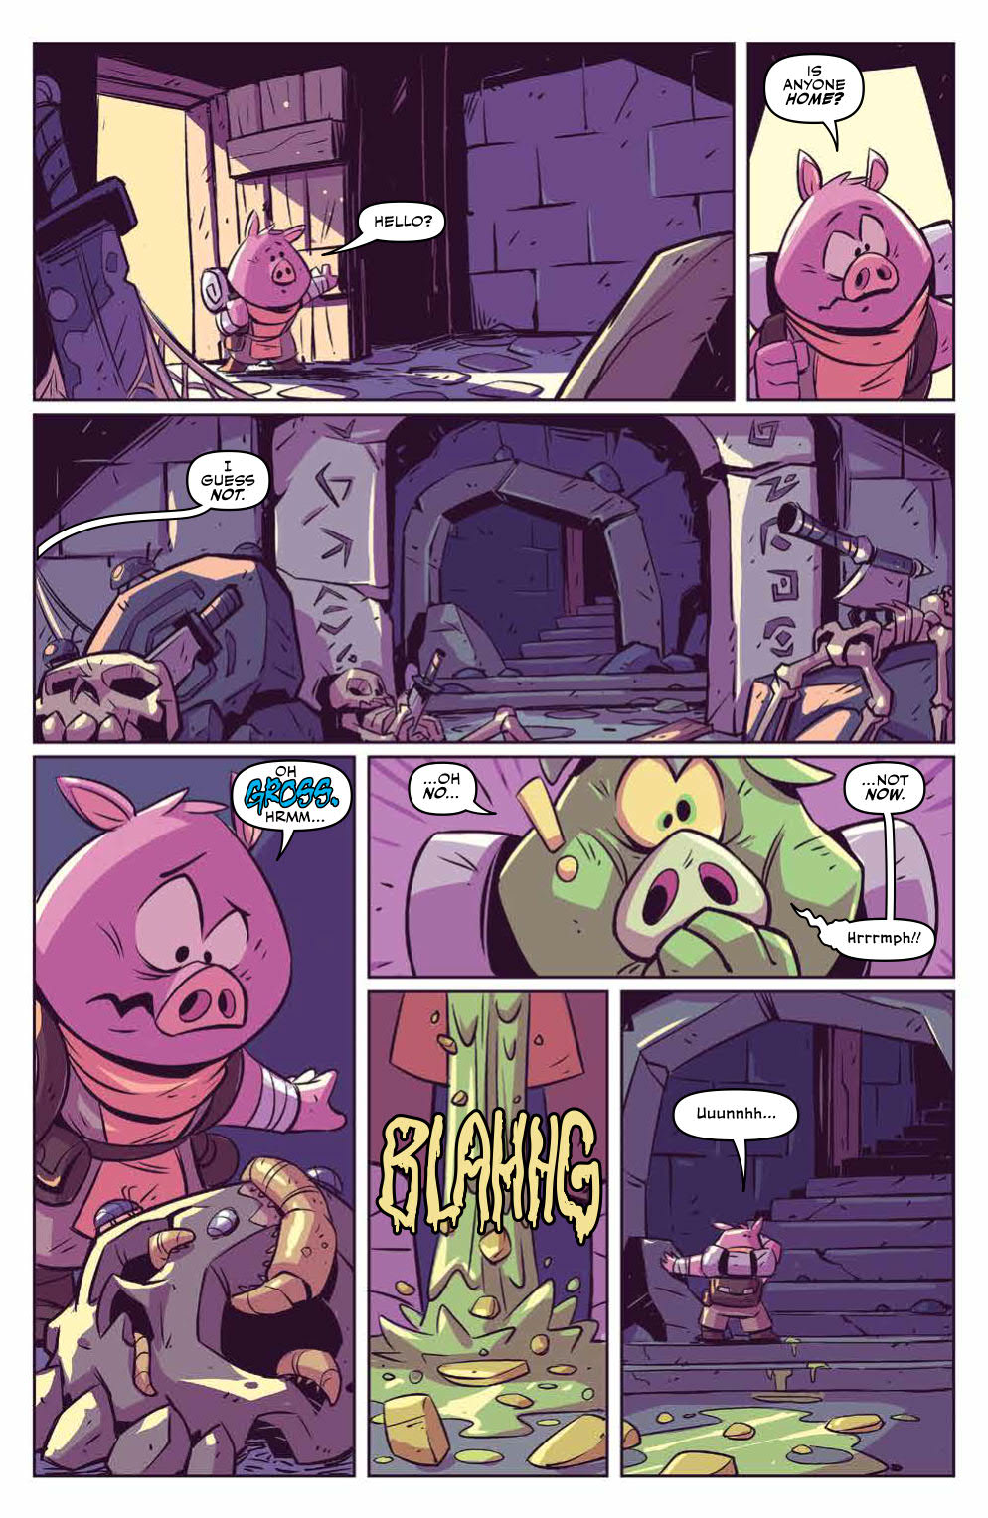 RuinWorld_001_PREVIEW_Page_5_Image_0001.png